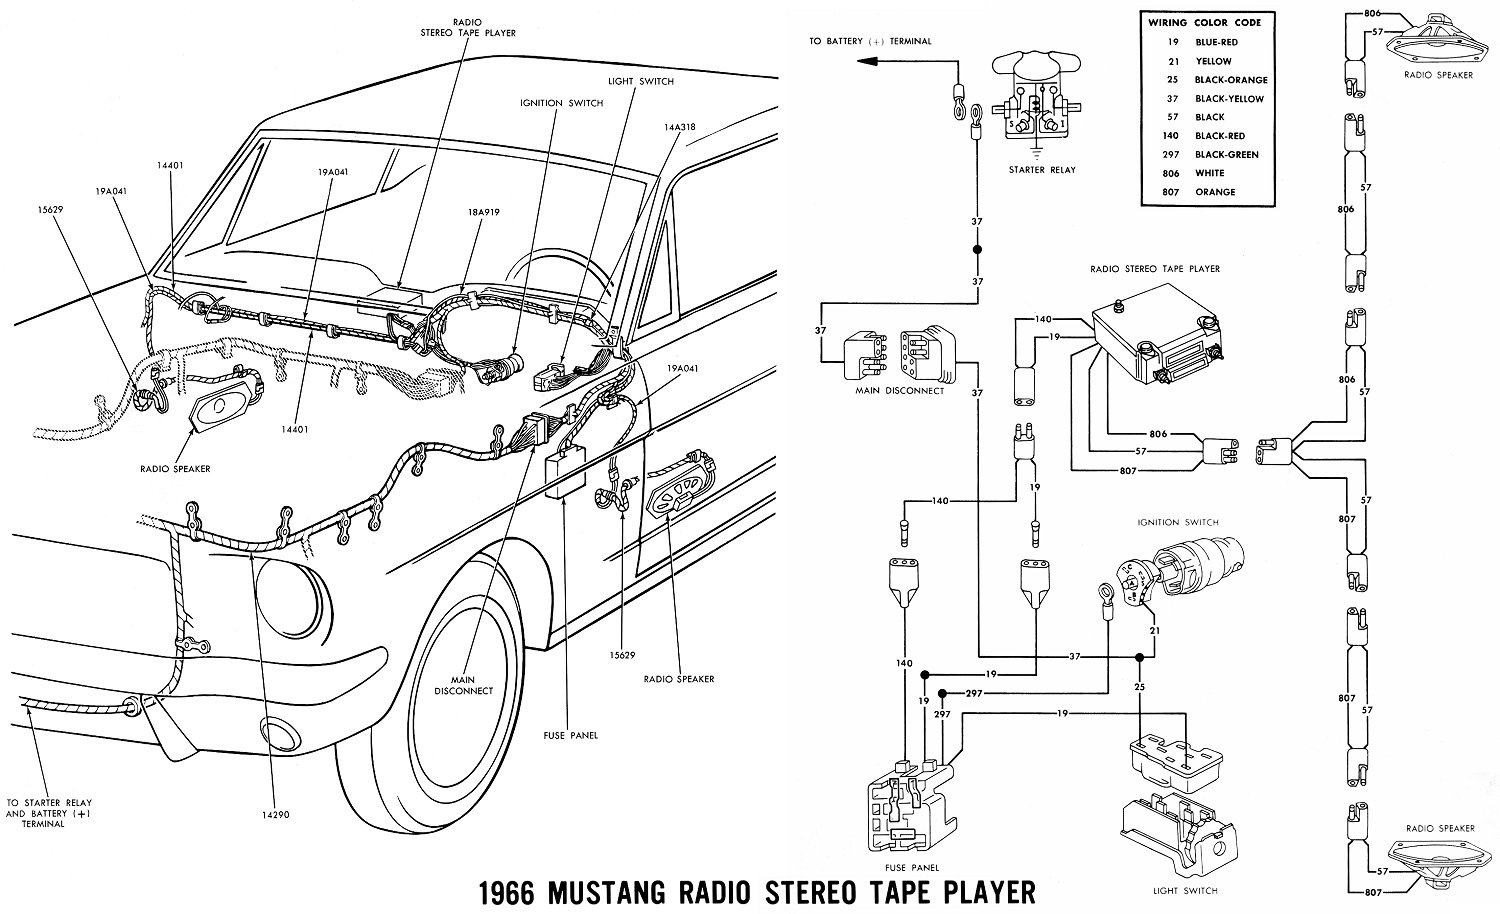 66stereo vintage mustang wiring diagrams 1969 mustang wiring diagram at bayanpartner.co